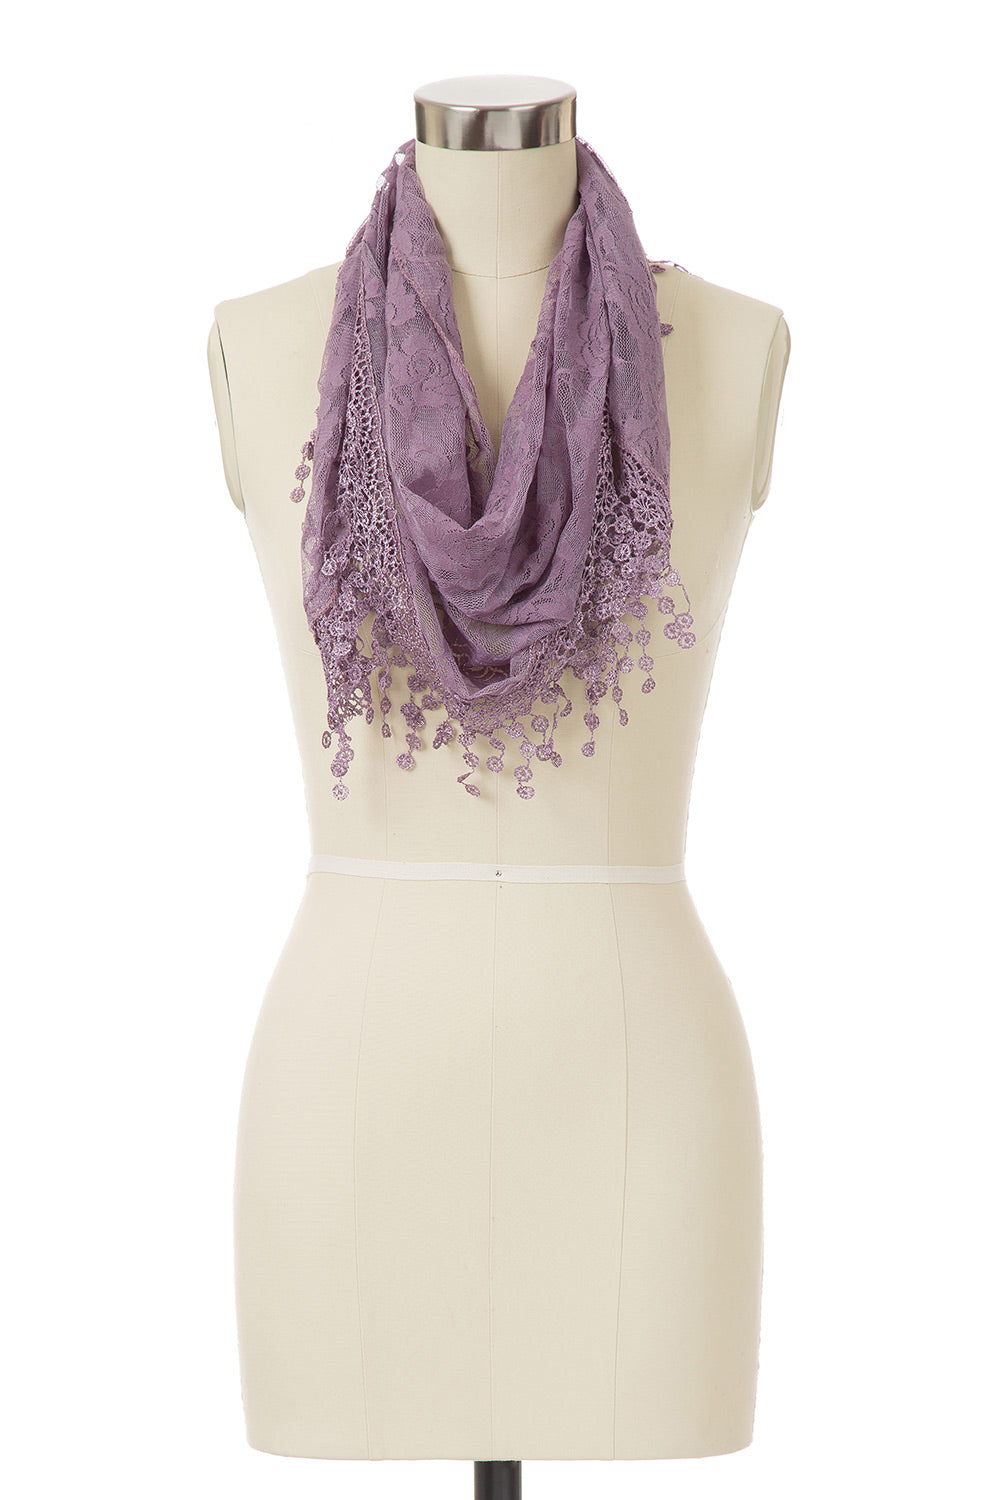 Type 2 Vintage Lace Scarf in Purple